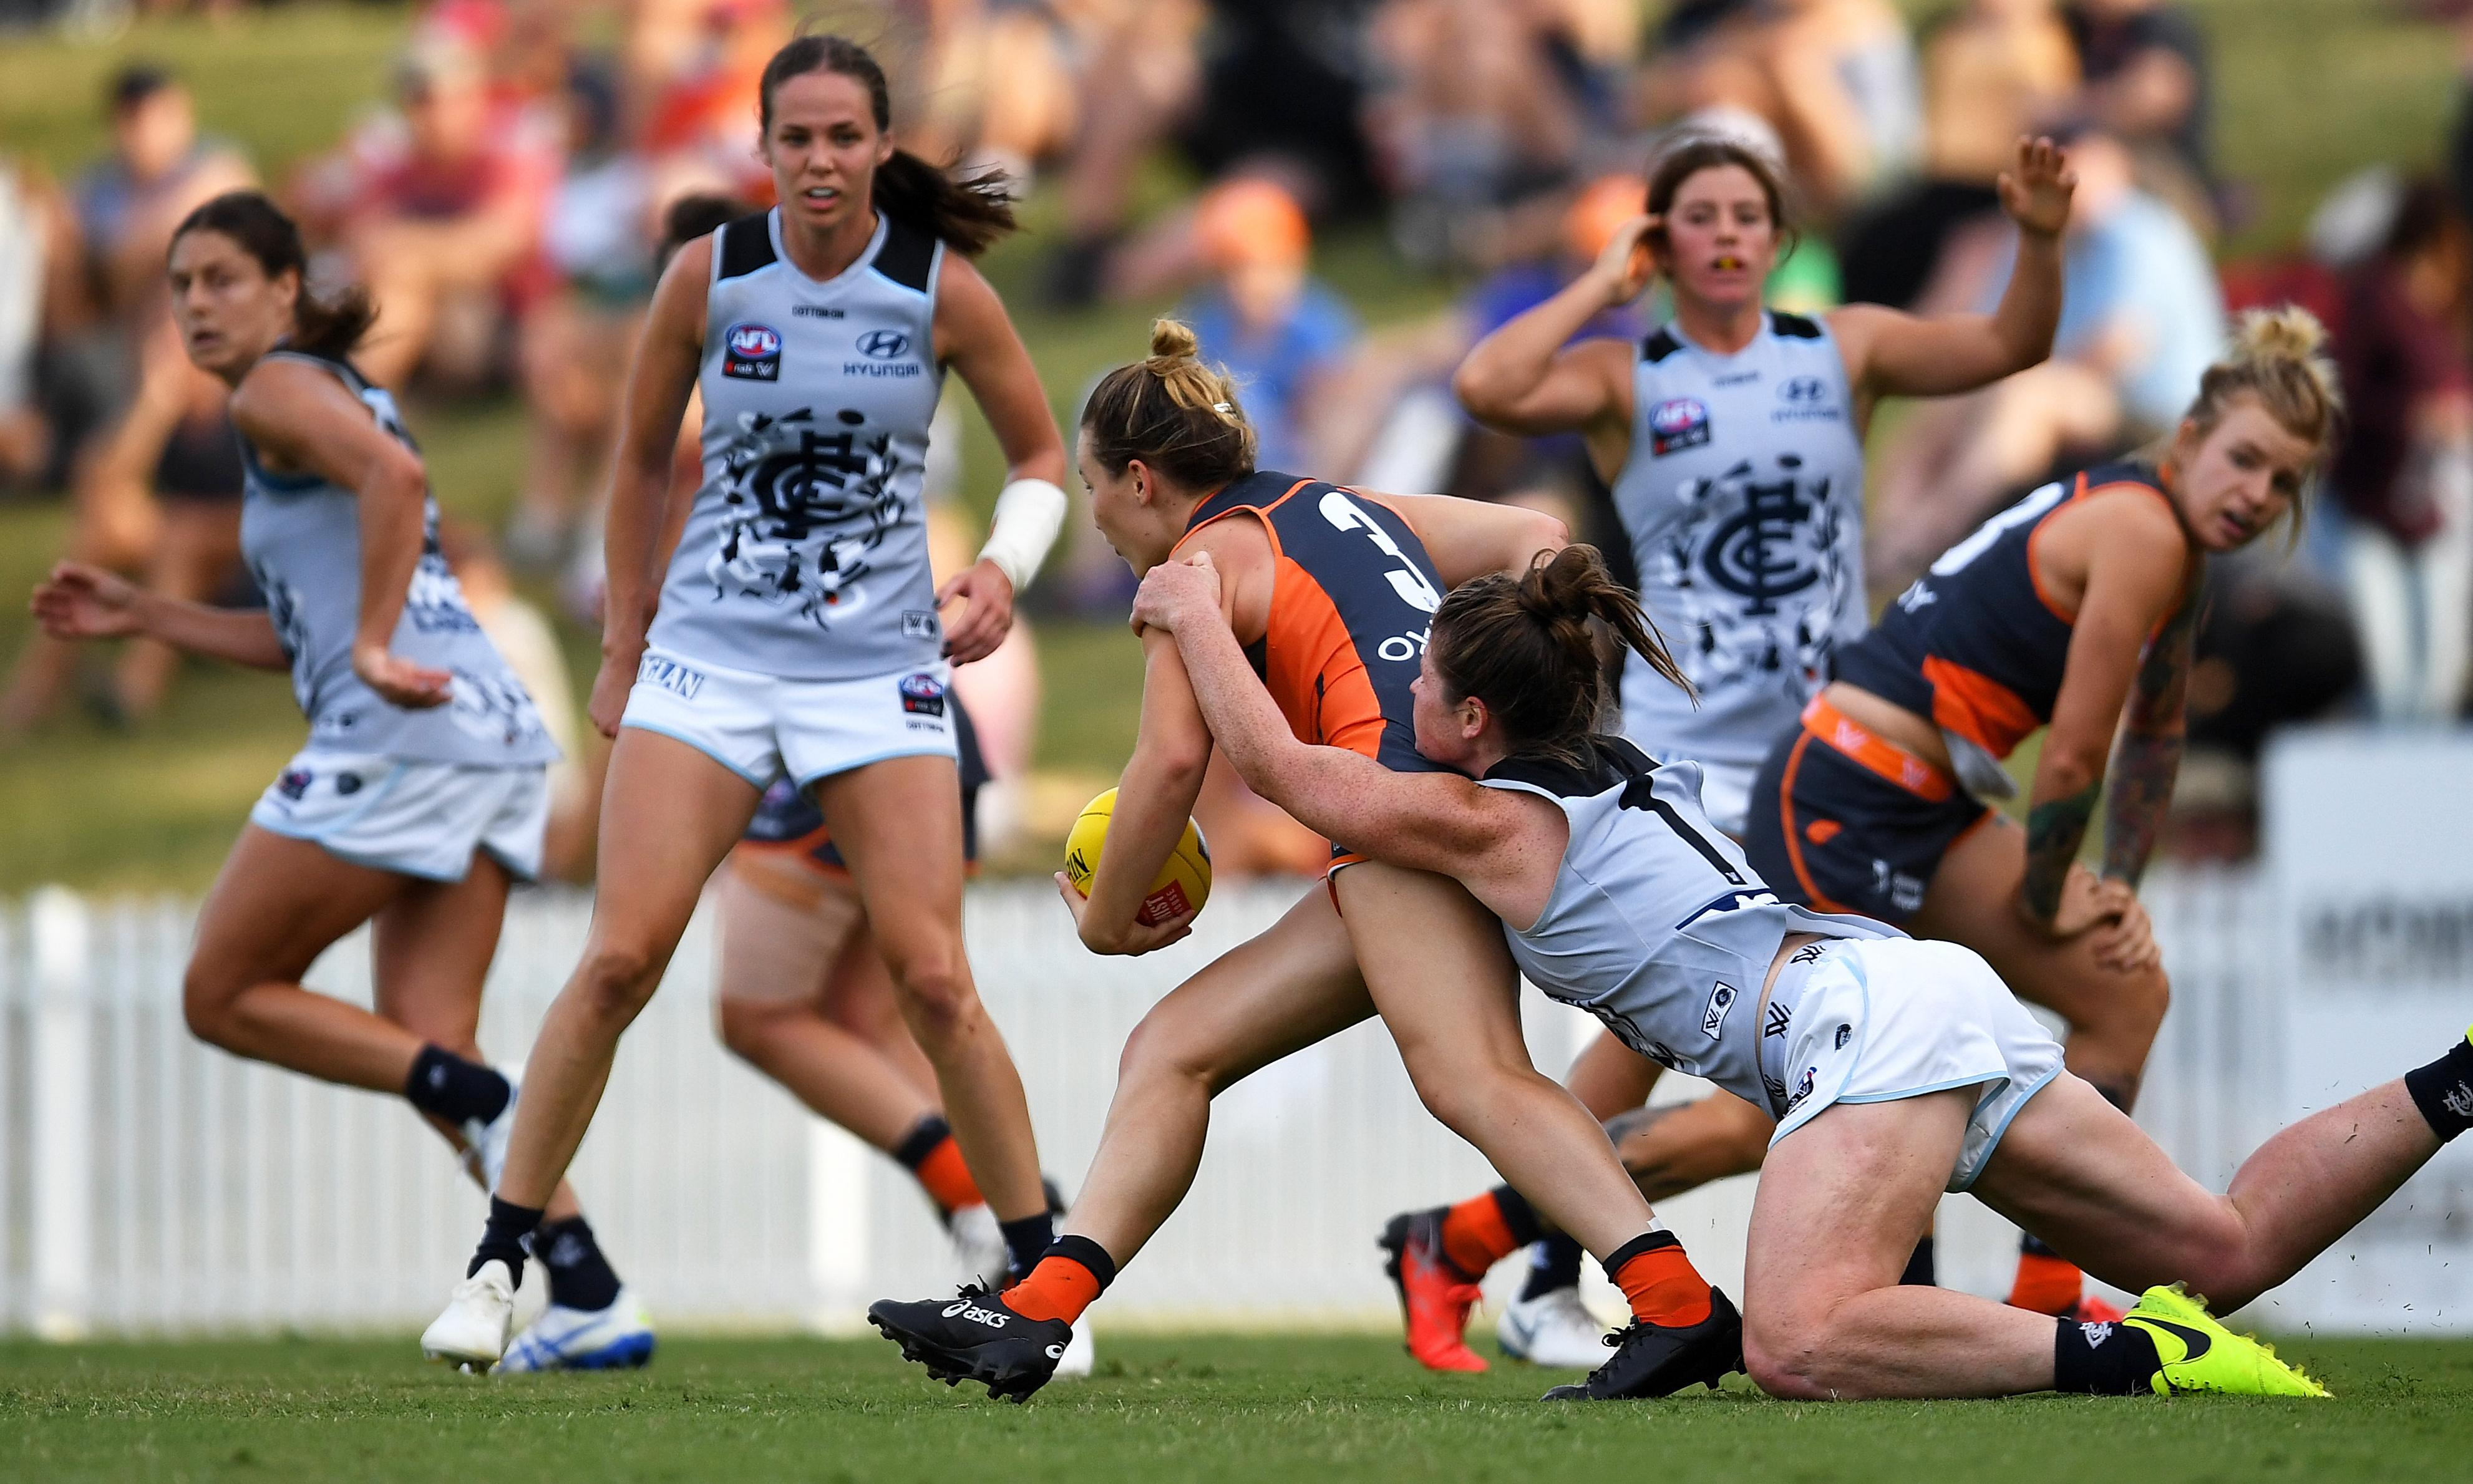 AFLW asks for patience on controversial conference system